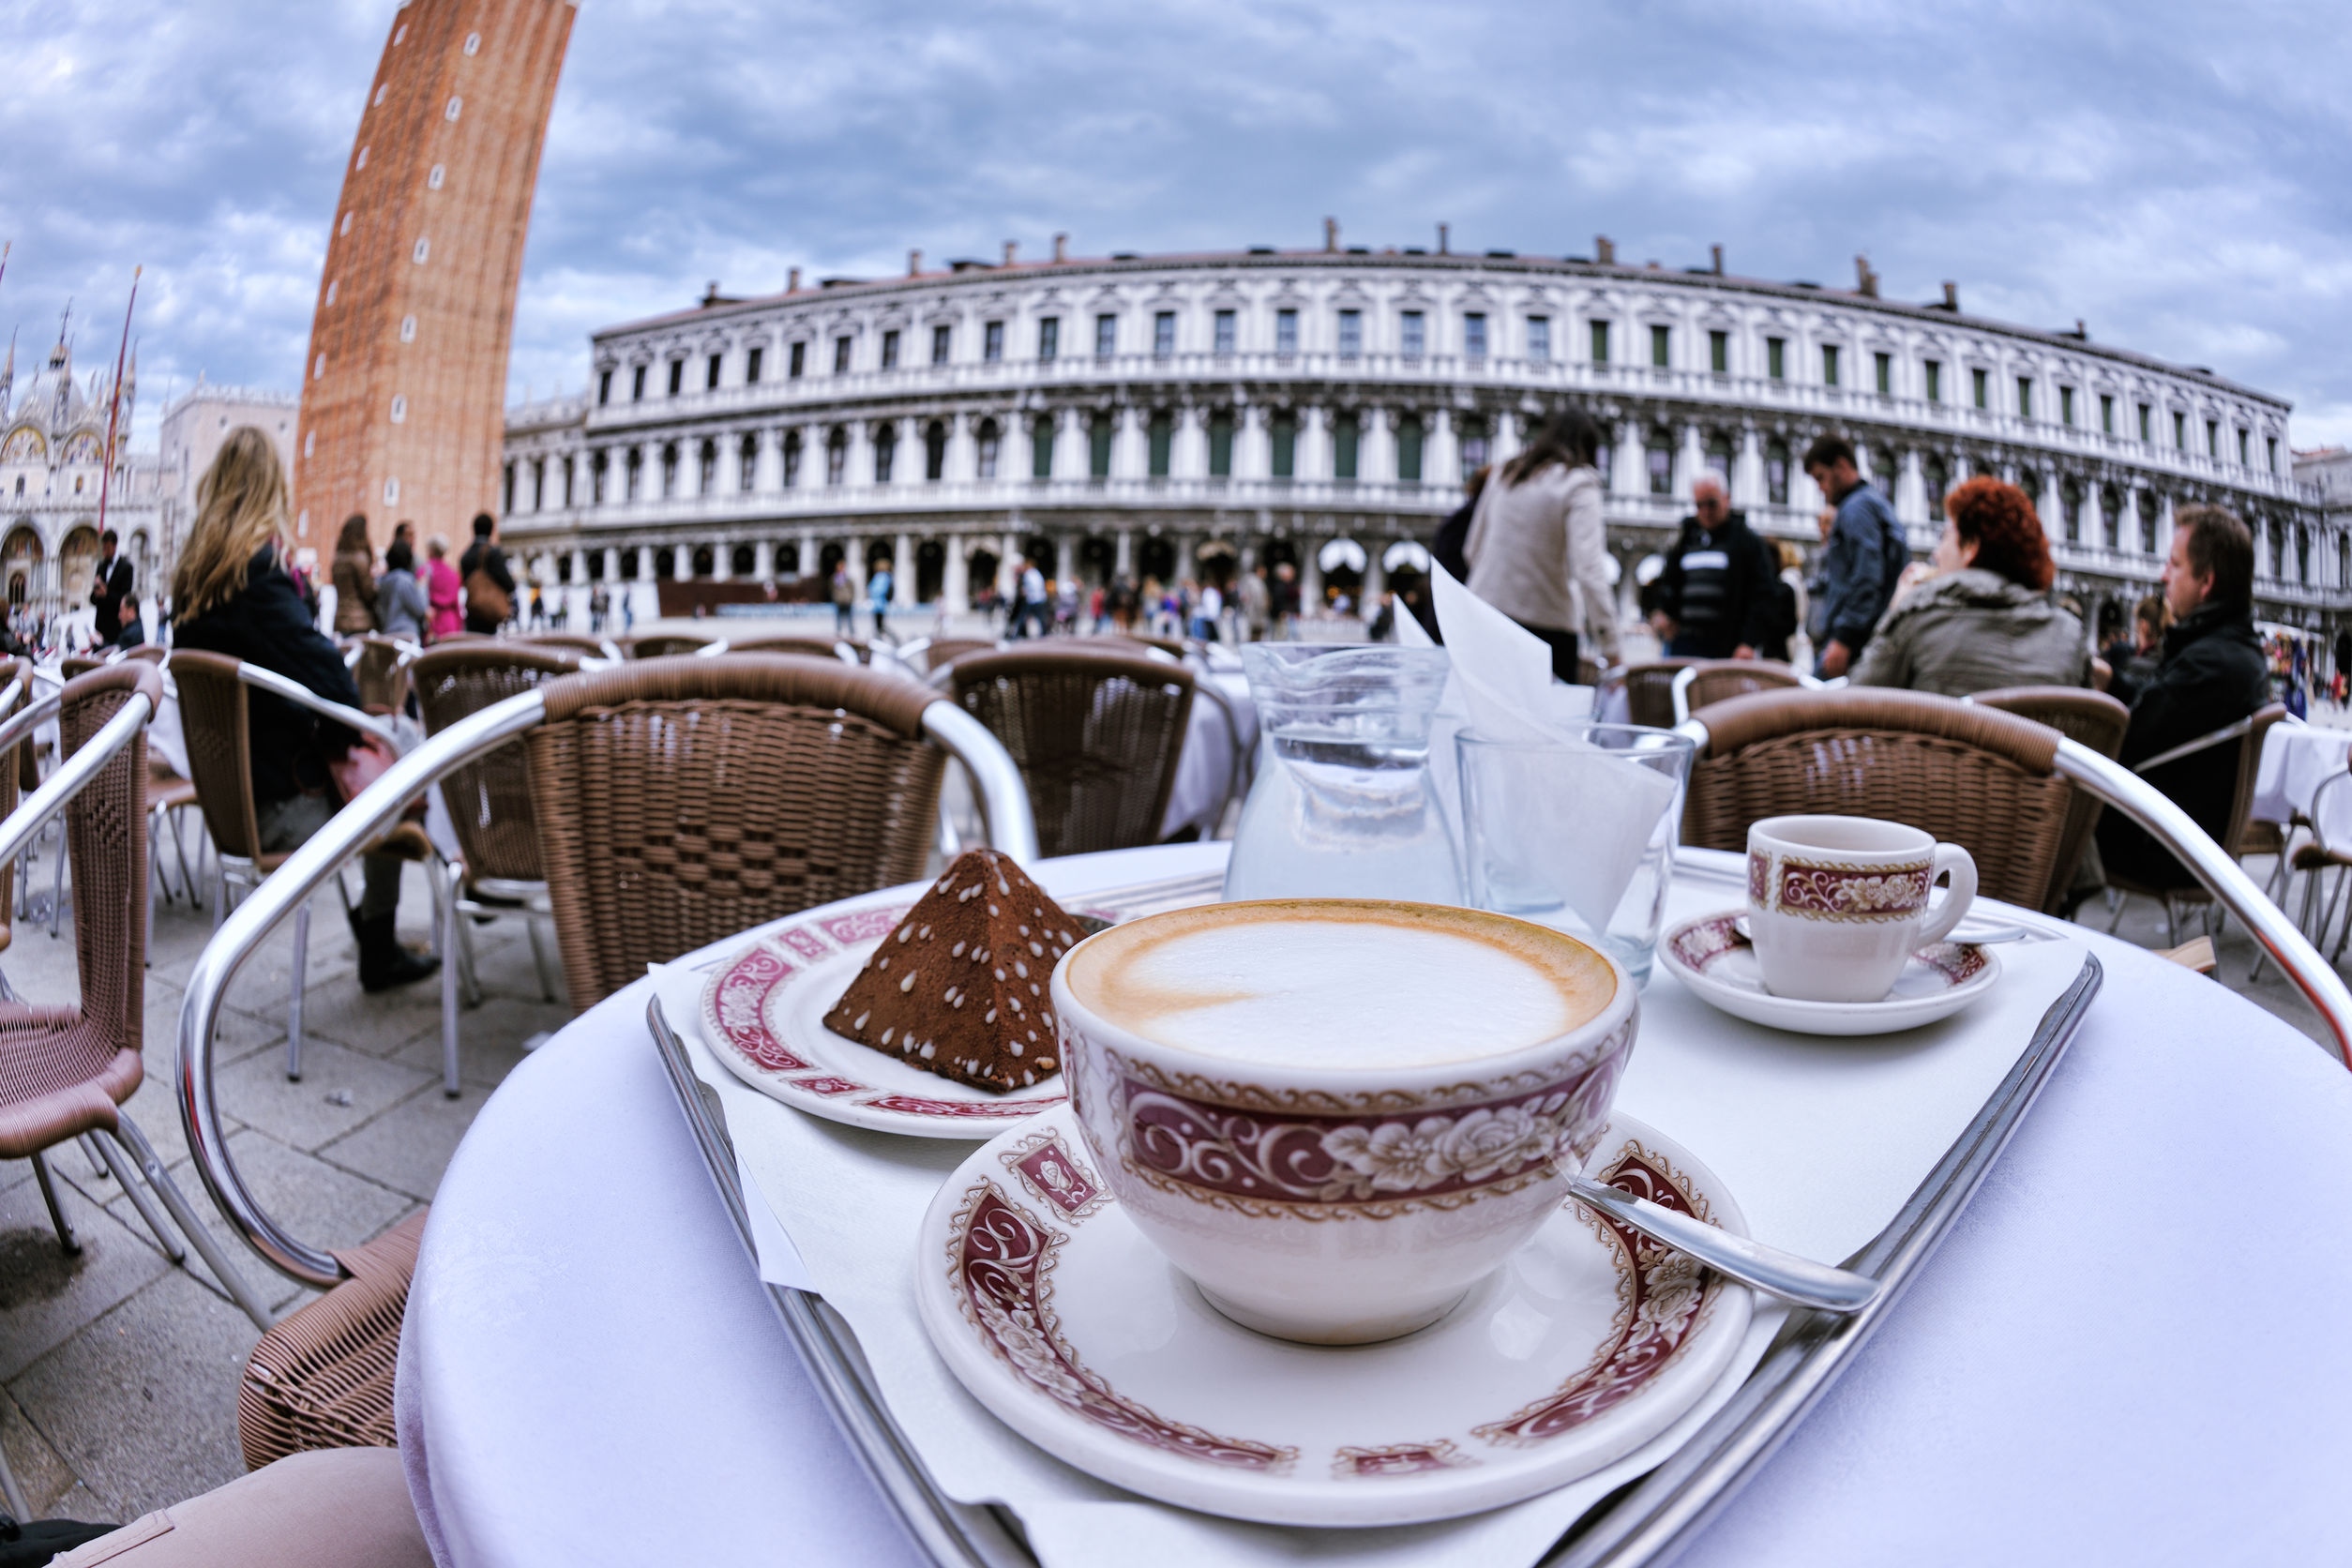 Having Coffee, The Italian Way